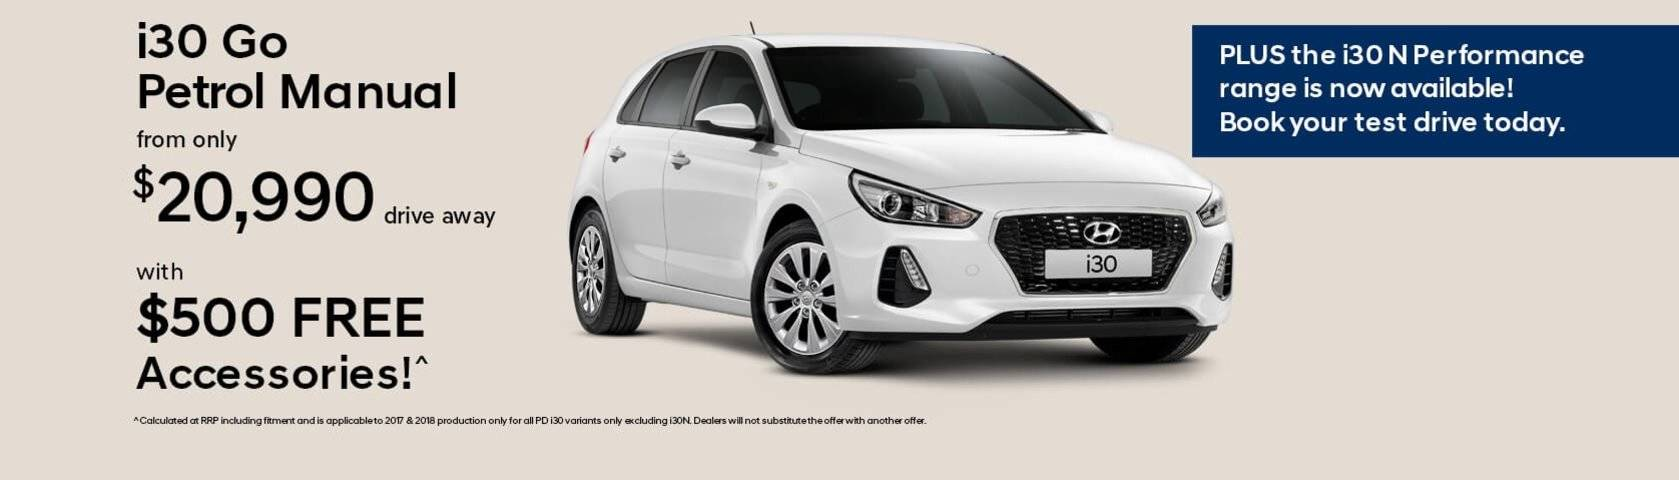 i30 Go Petrol Manual from only $20,990